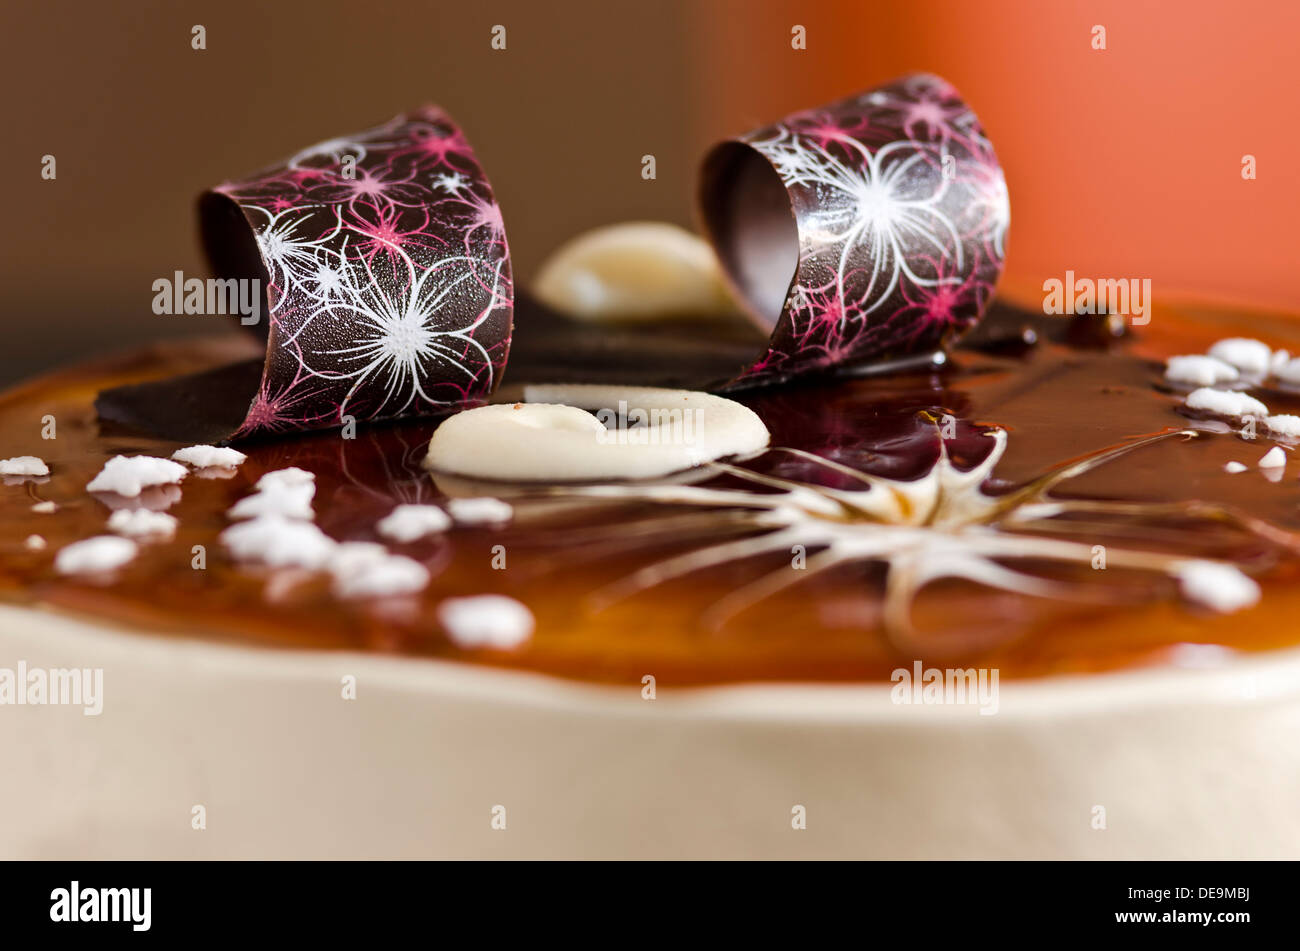 Delicious tiramisu cake - close up - Stock Image